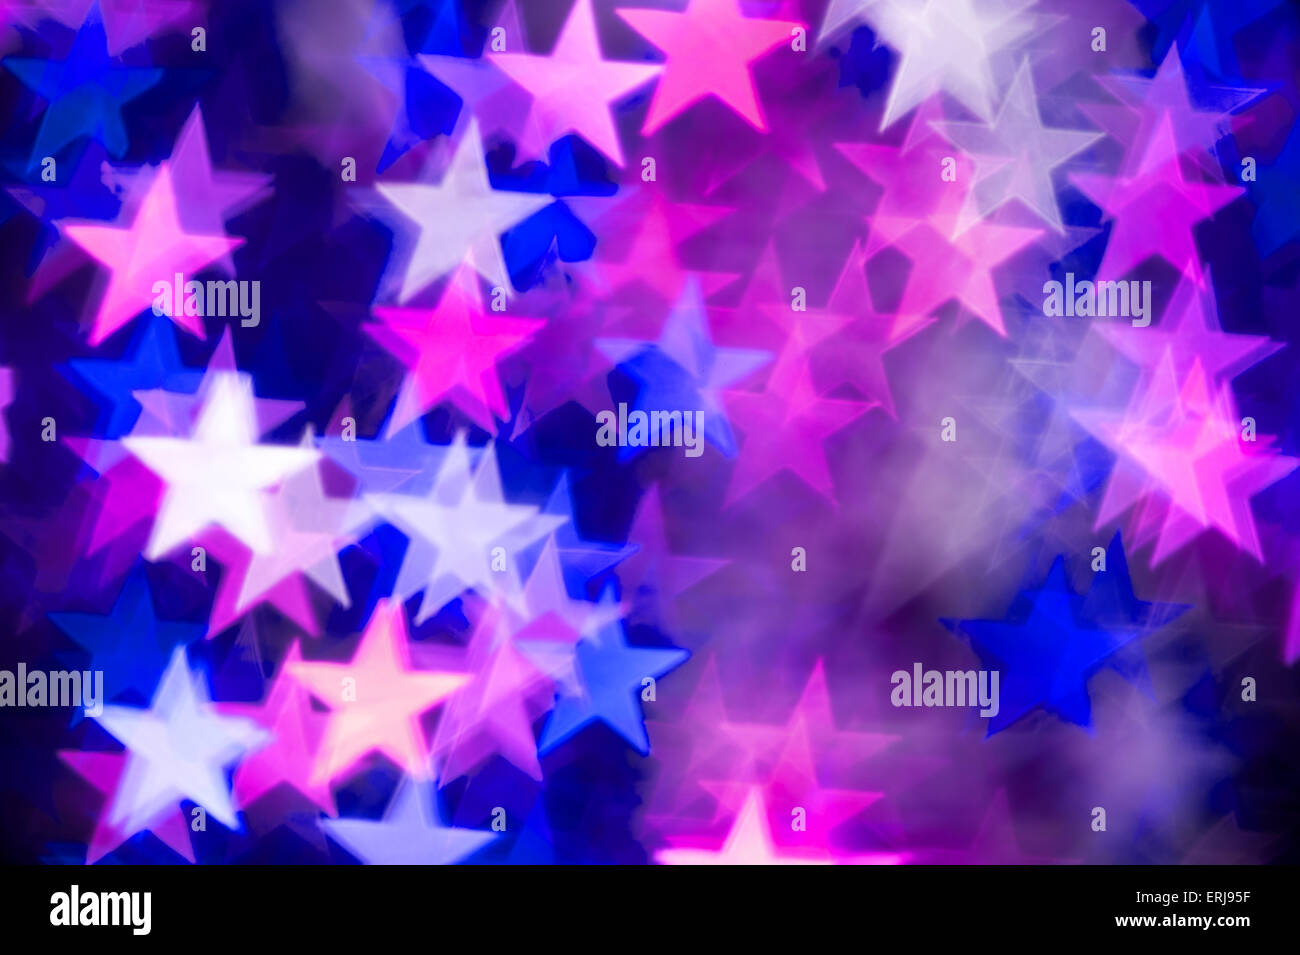 Pink and blue stars bokeh as background stock photo 83380907 alamy pink and blue stars bokeh as background thecheapjerseys Gallery